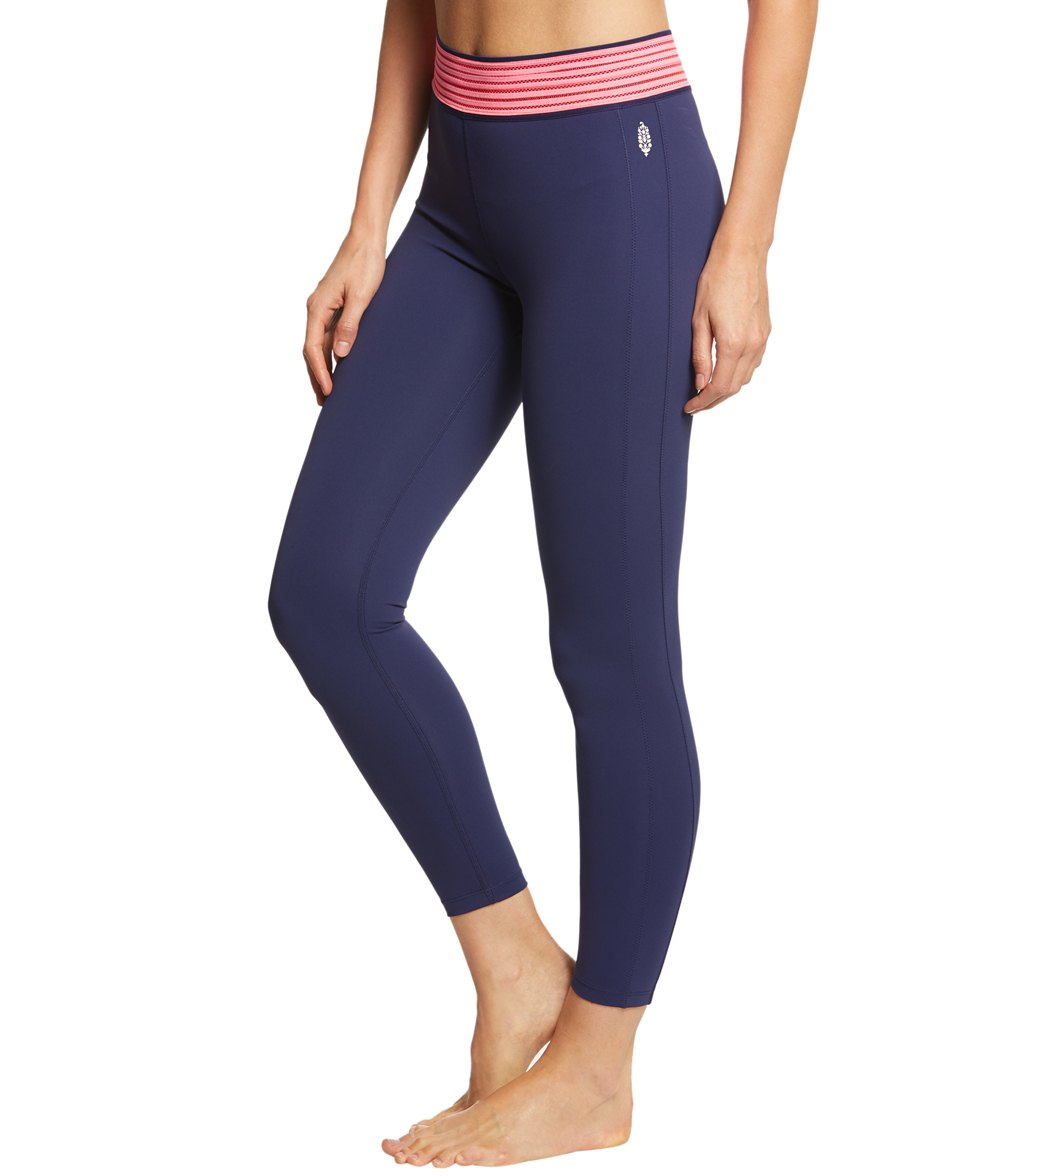 Free People Movement Solid Practice Makes Perfect Yoga Leggings - Navy Blue Spandex